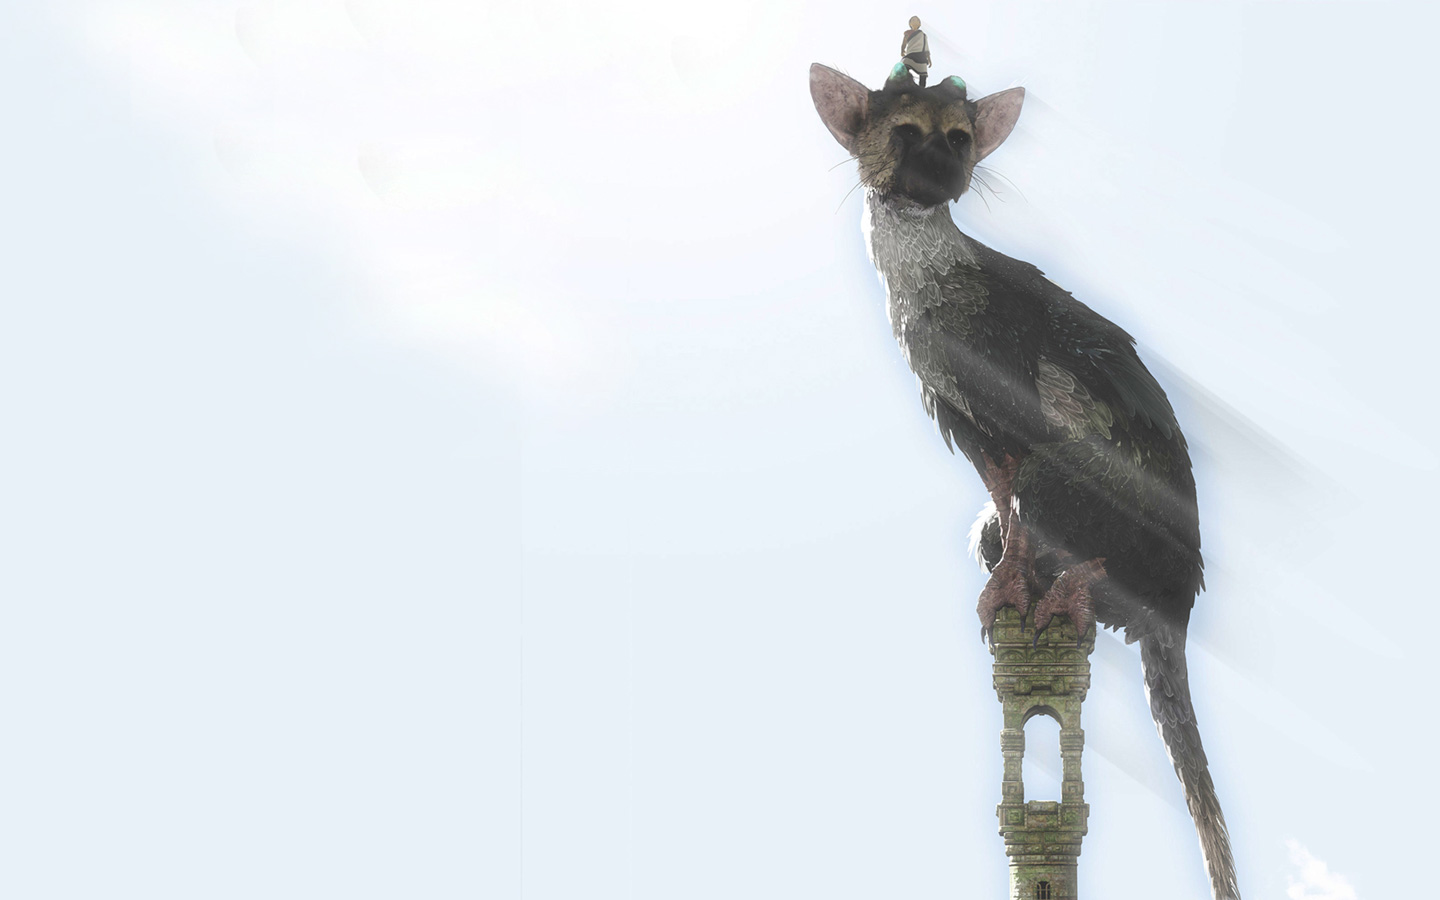 Free The Last Guardian Wallpaper in 1440x900